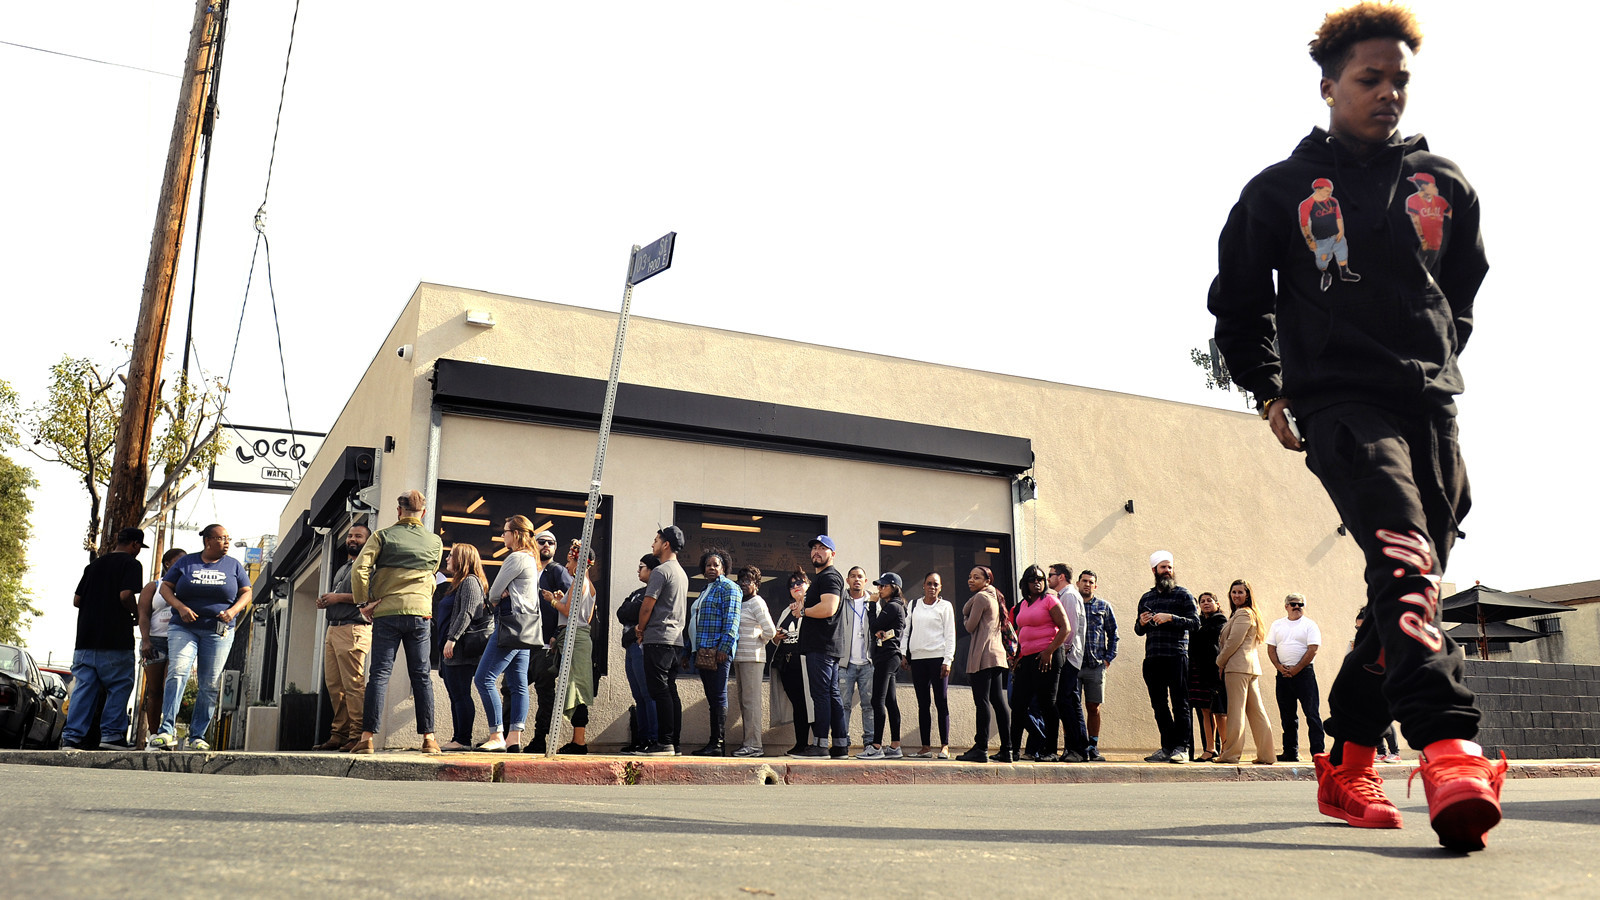 A line outside Locol in Watts when the restaurant opened in January 2016.